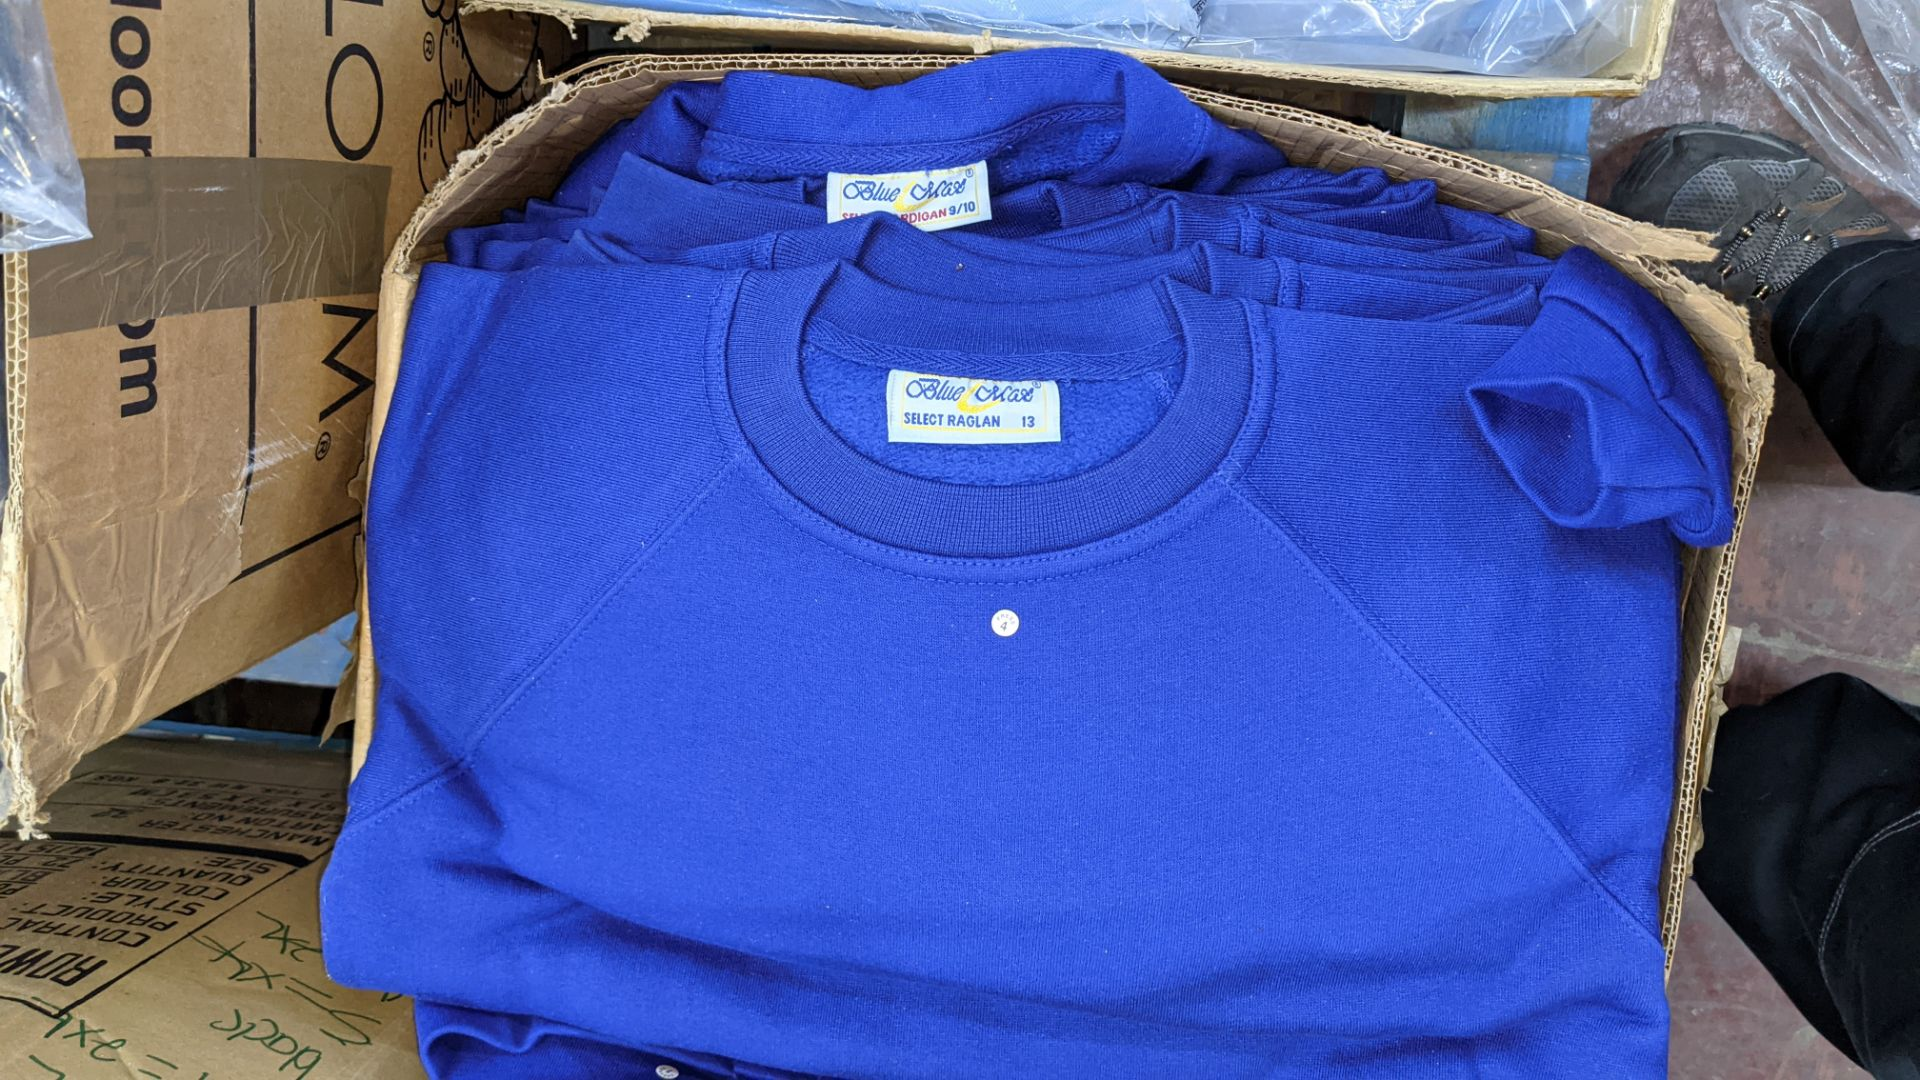 Approx 24 off mixed children's t-shirts, jumpers & cardigans - Image 4 of 5